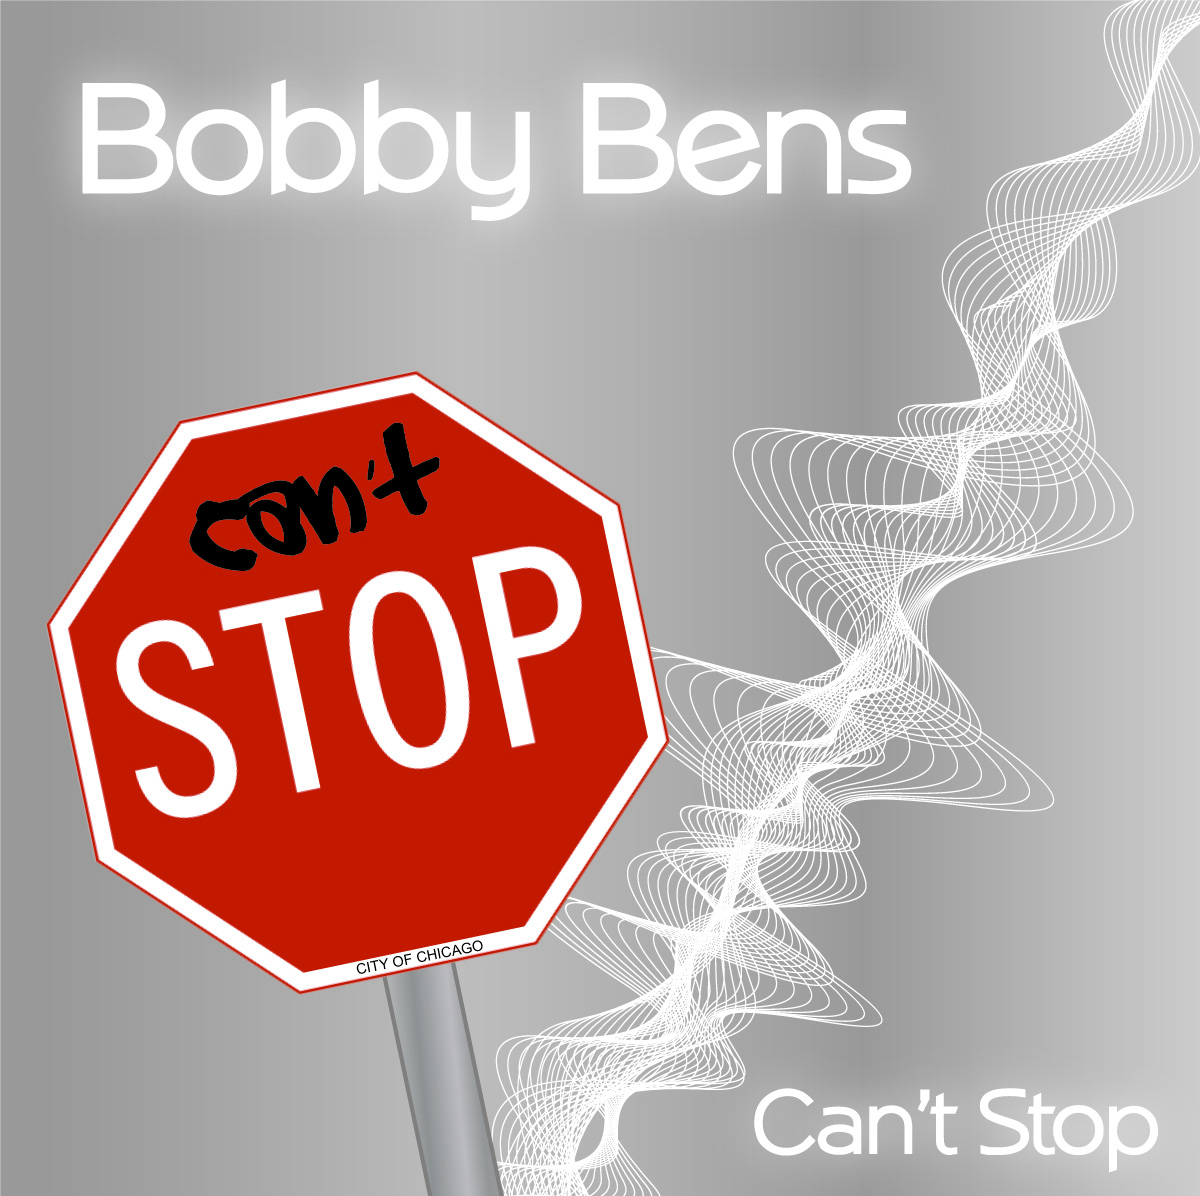 Bobby Bens - Can't Stop